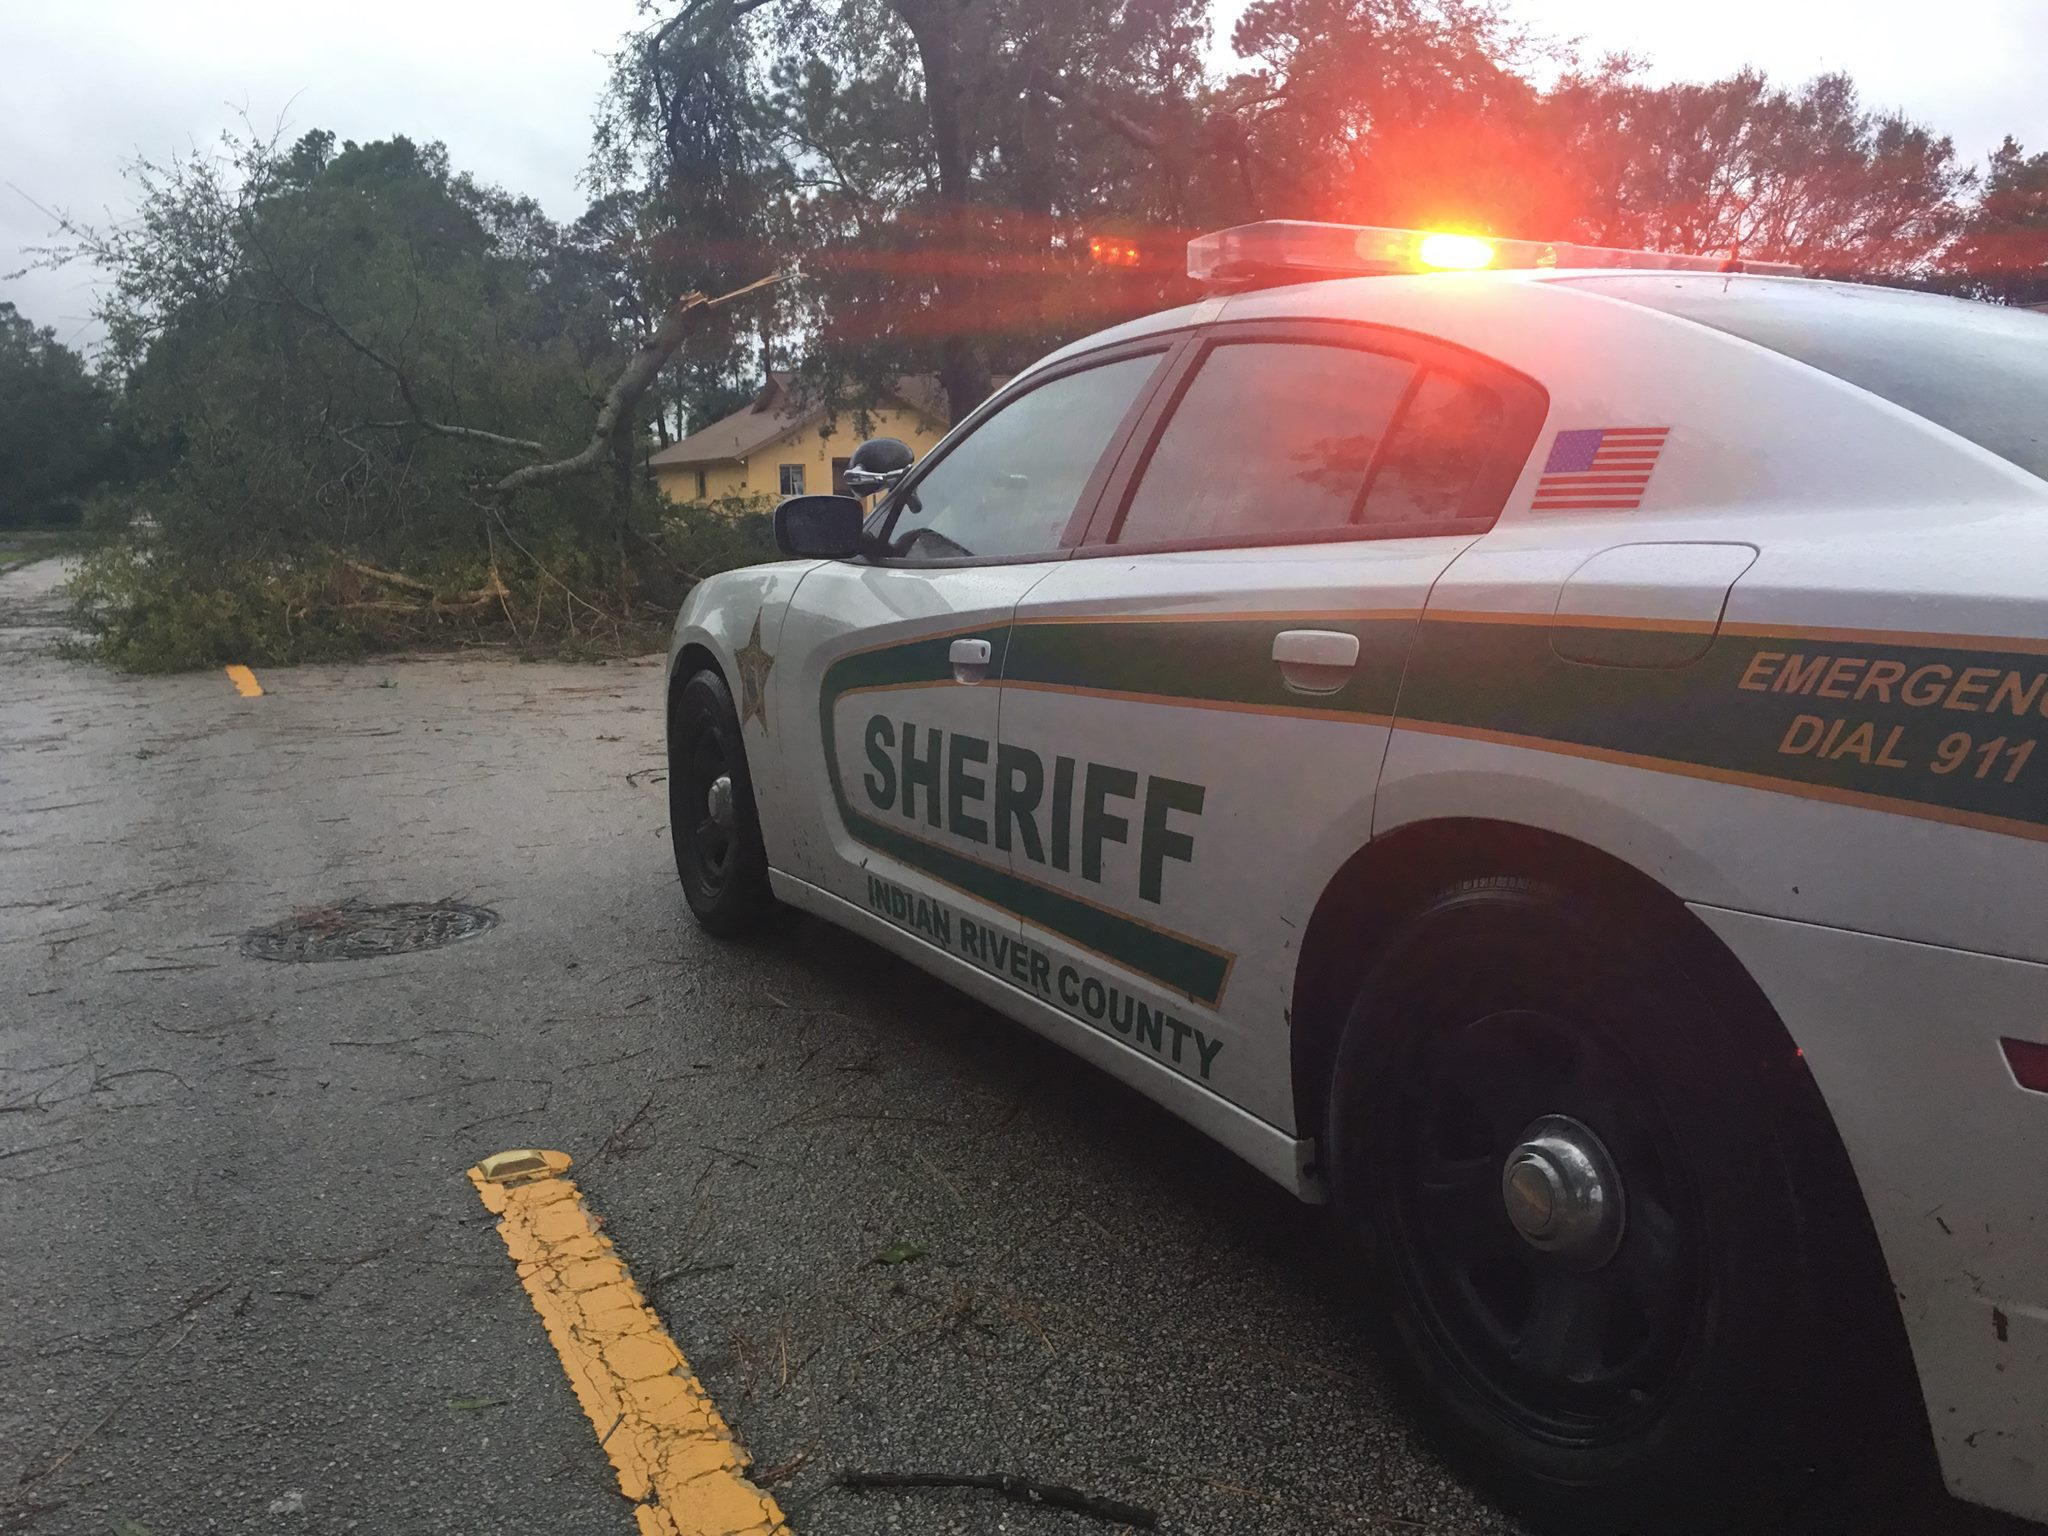 Indian River County Sheriff's Sergeant terminated after domestic violence arrest